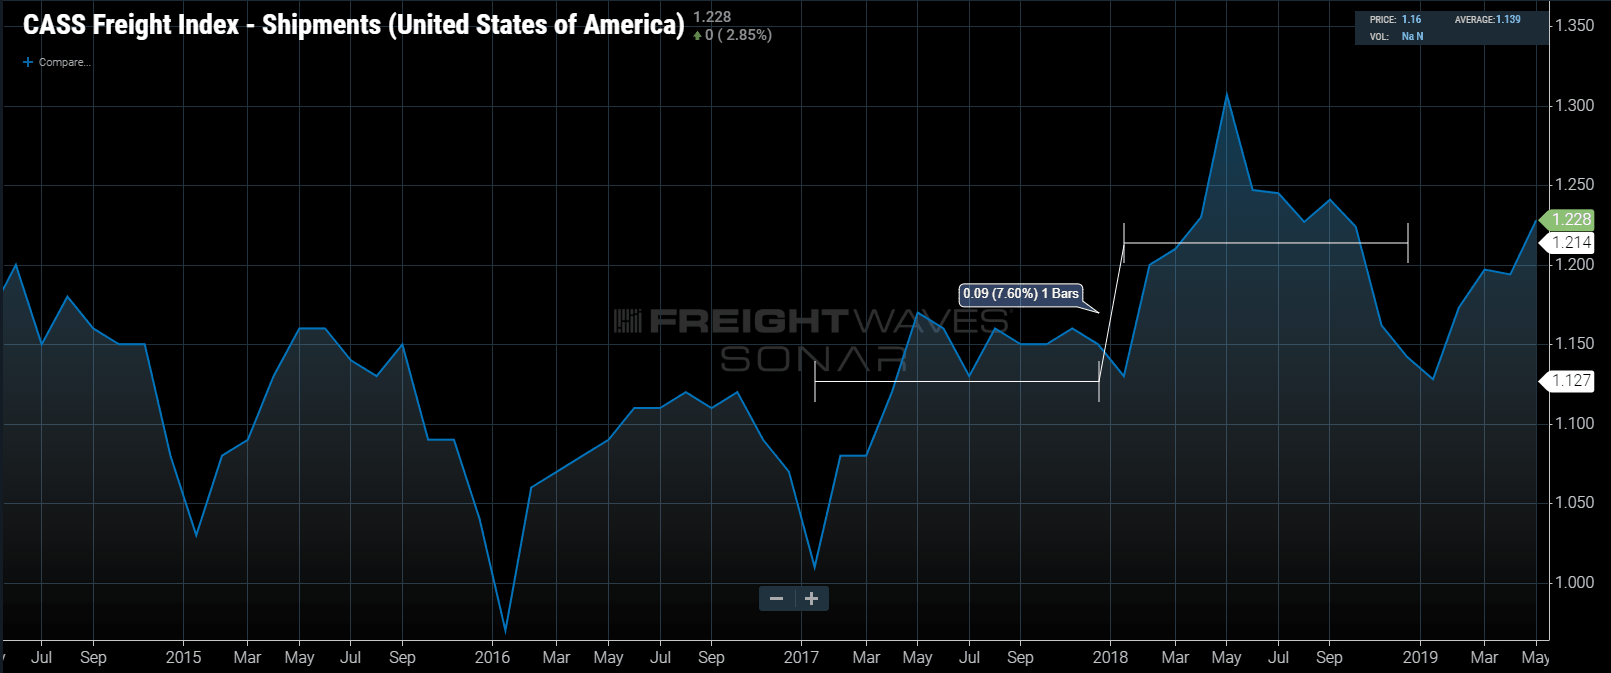 CASS Freight Index - Shipments (United States of America)